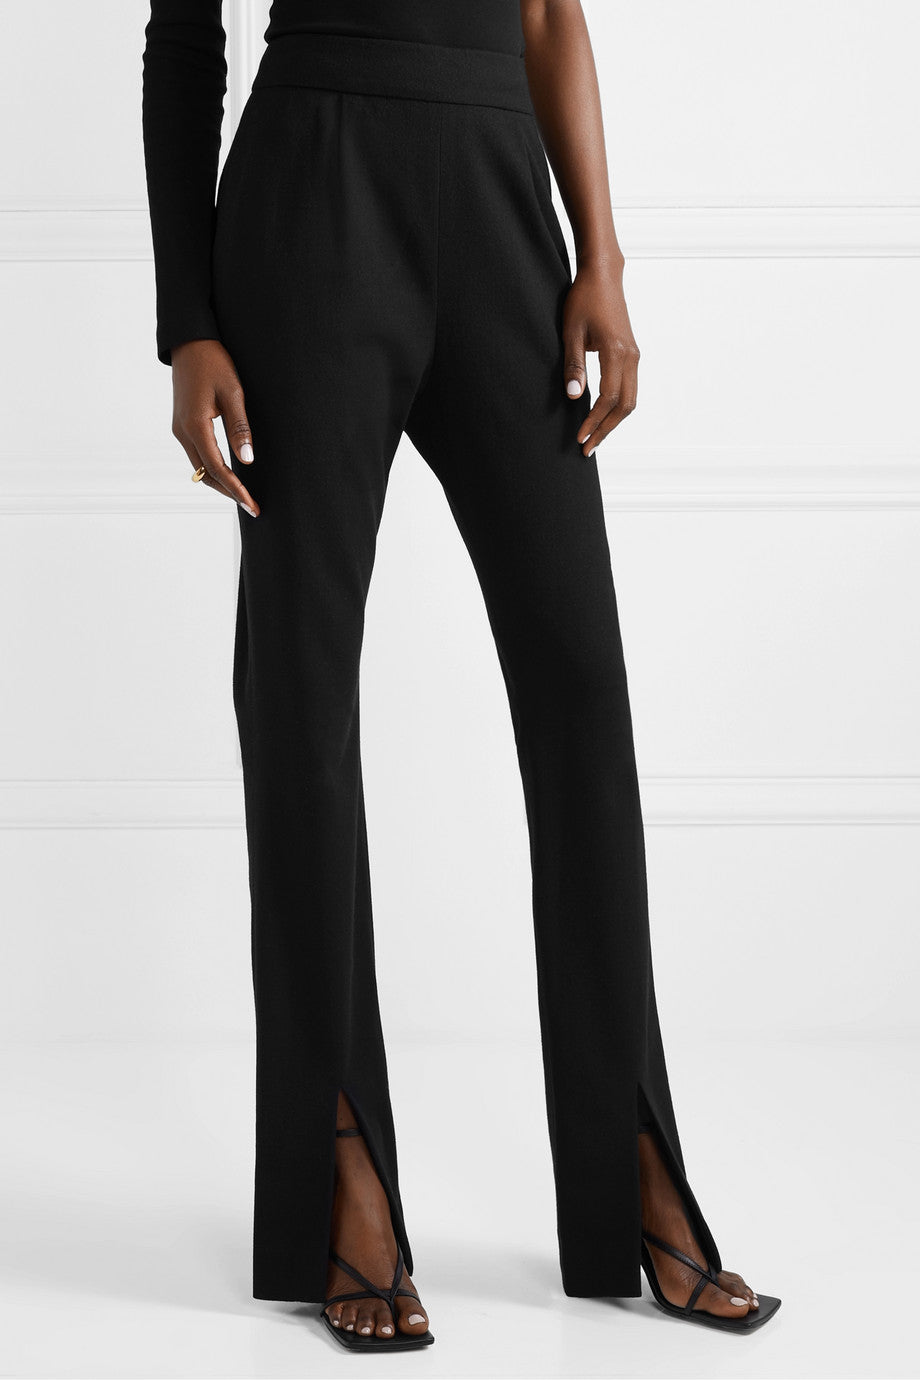 LA COLLECTION Ludovique Trousers in Black